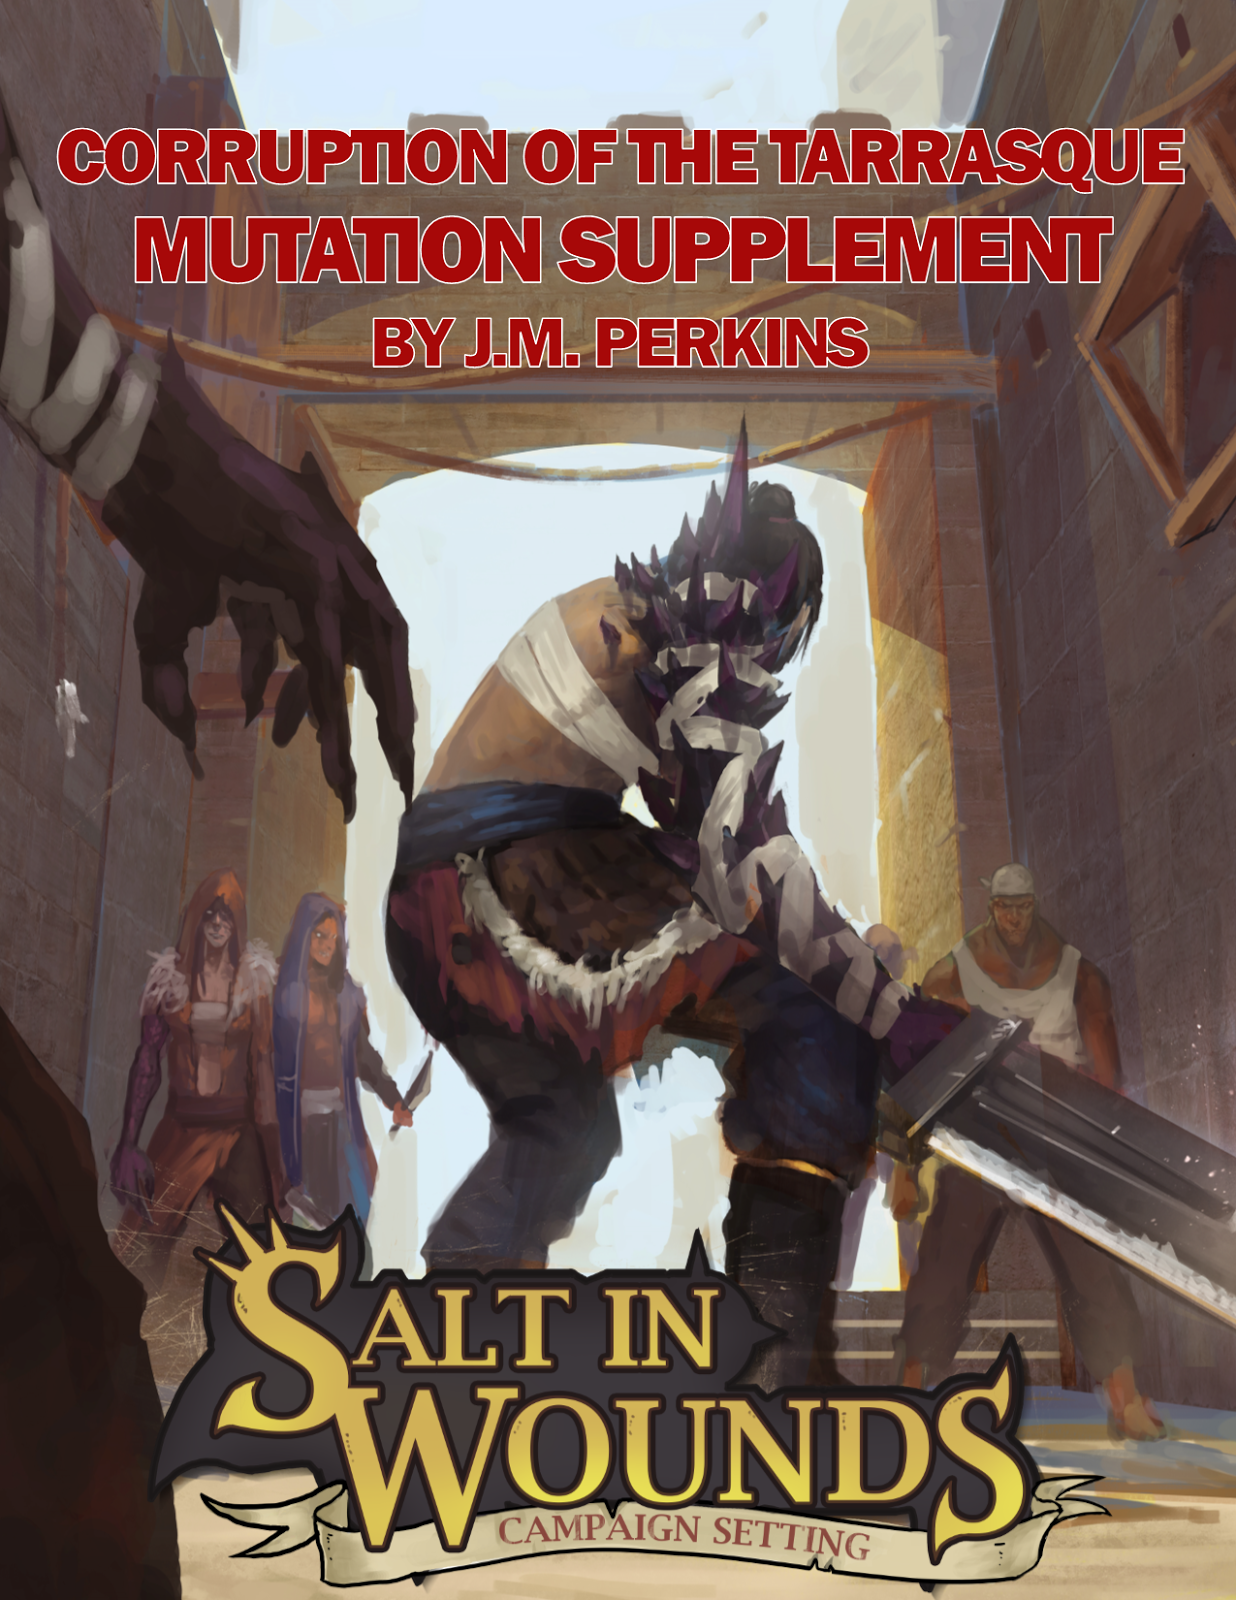 Buy the Mutation Supplement